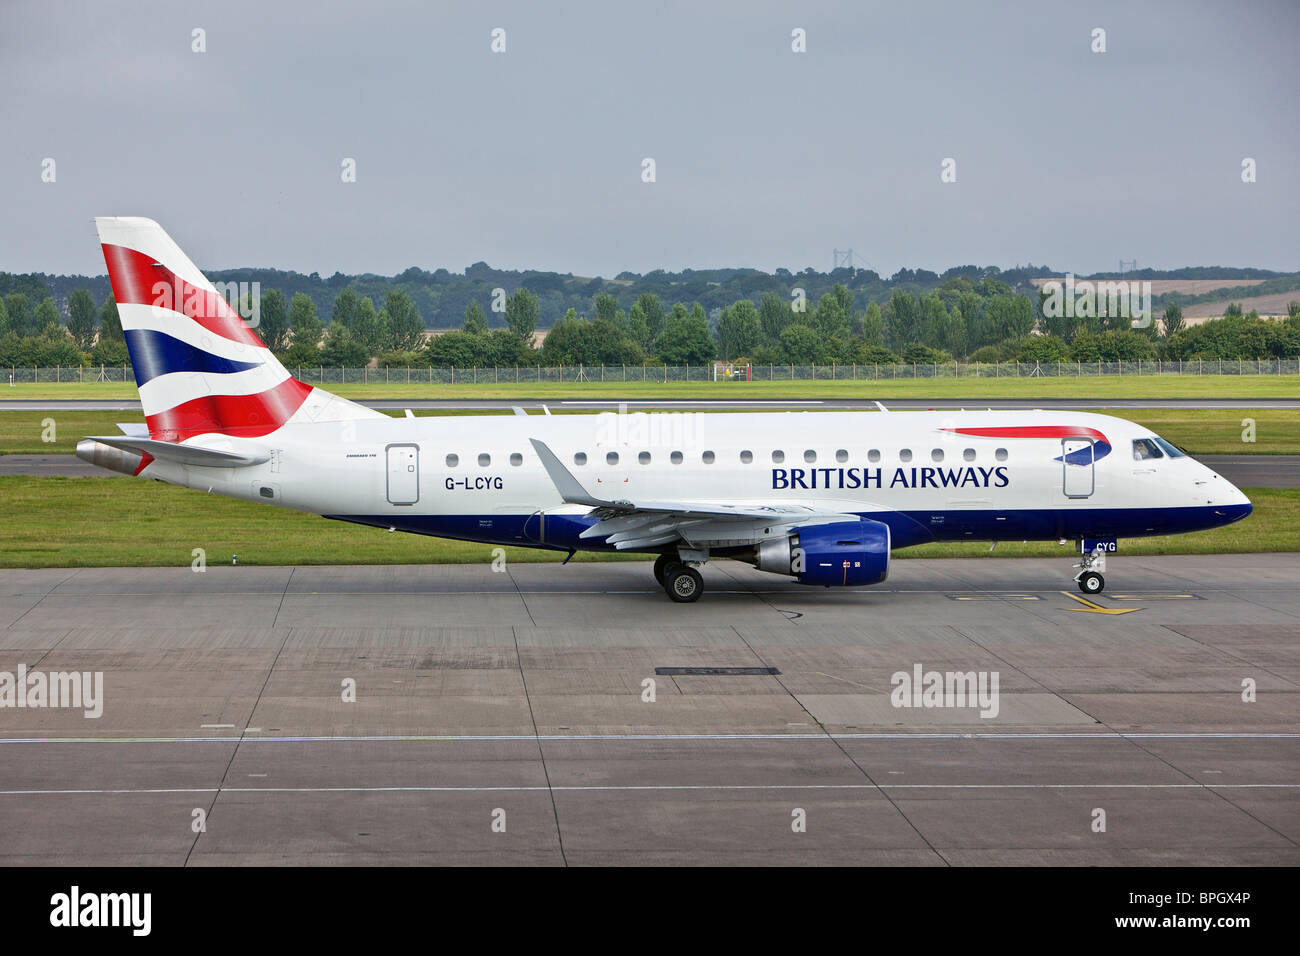 BA Cityflyer G-LCYG Embraer E170 STD at Edinburgh Airport - Stock Image